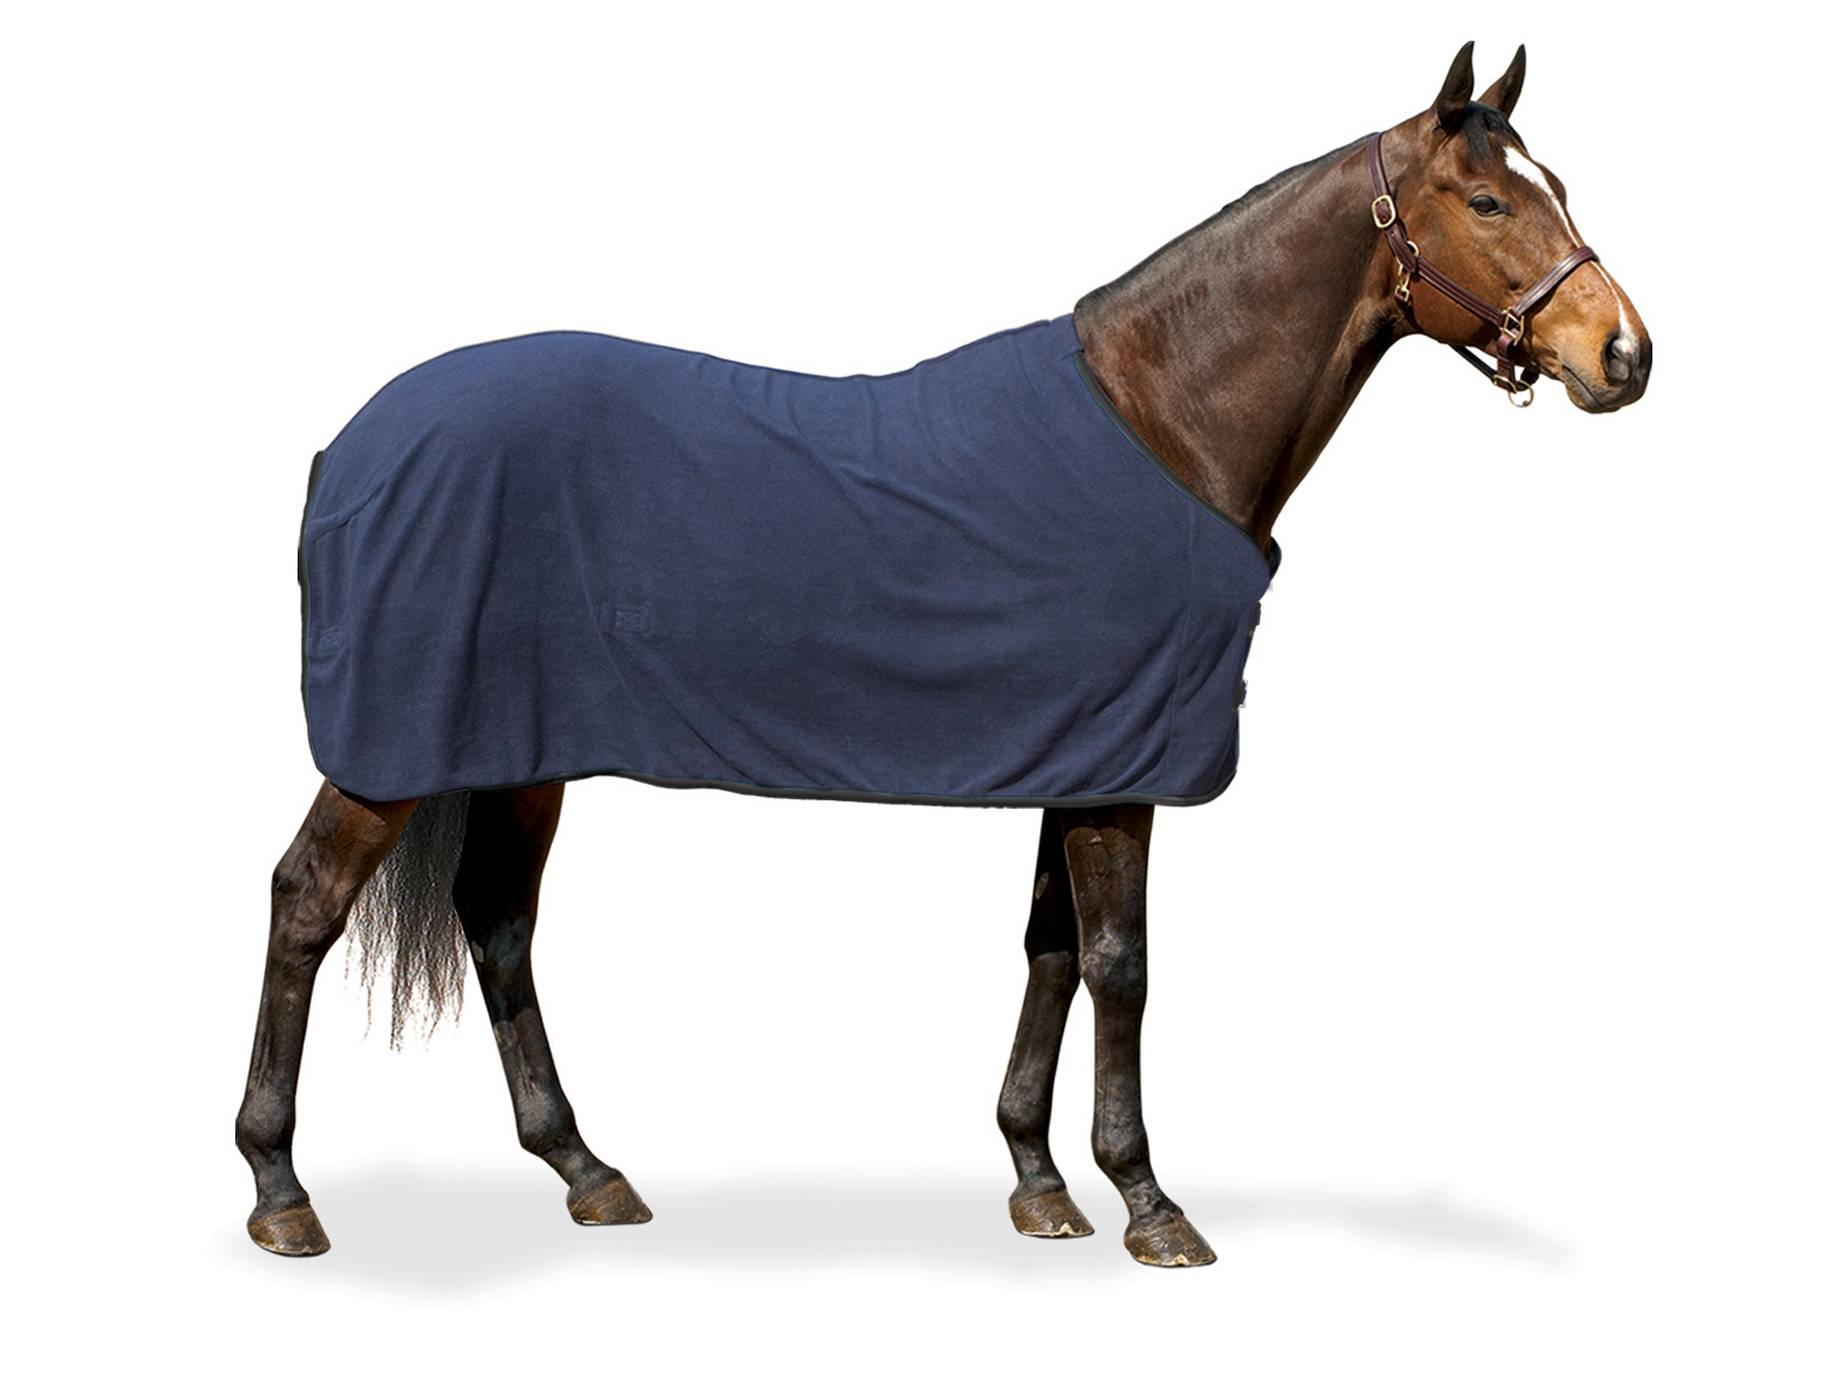 Centaur 220g Fleece Sheet - Solid